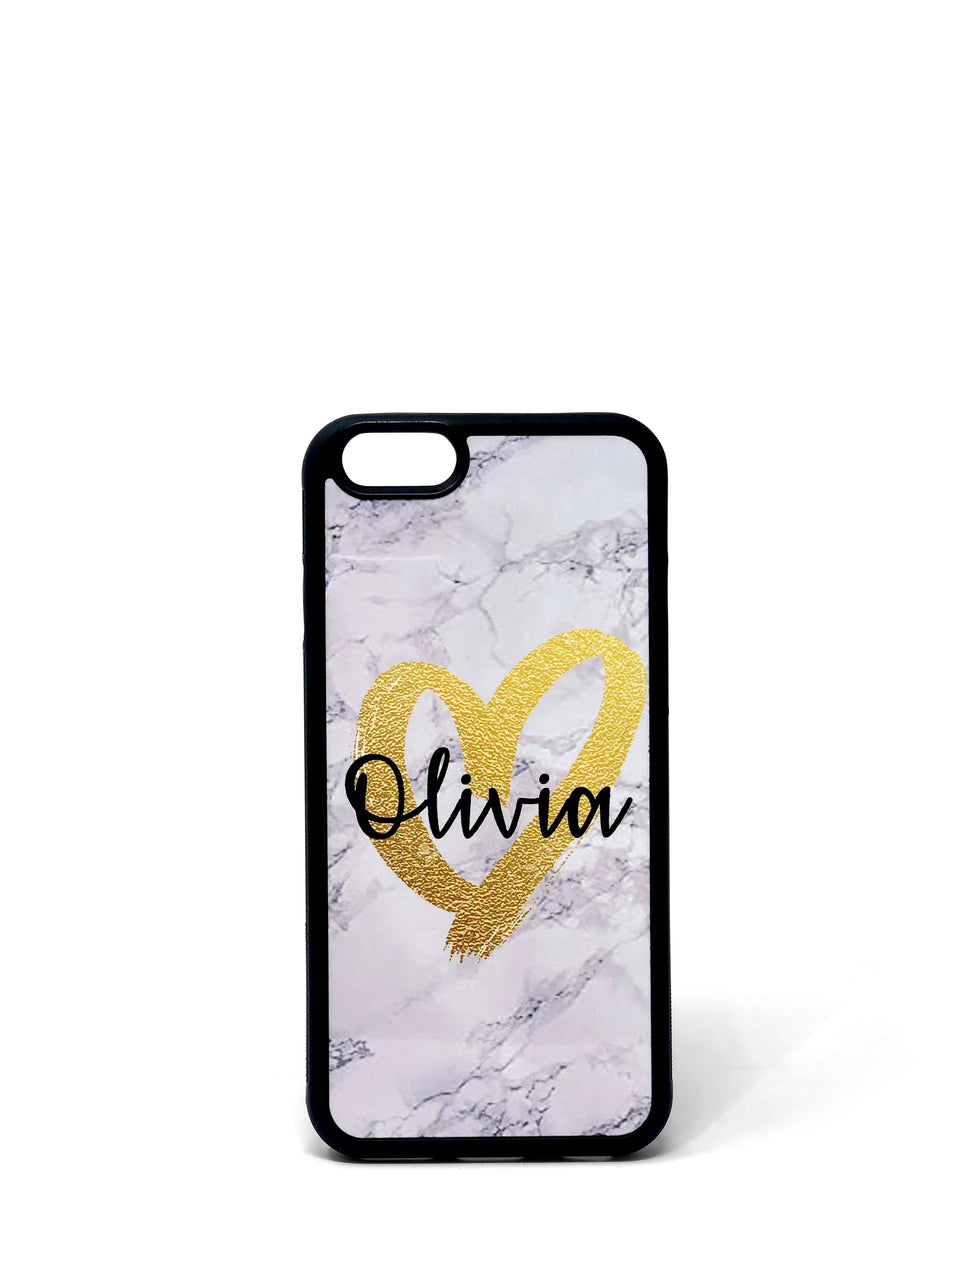 Phone Case - Large Gold Heart on Marble